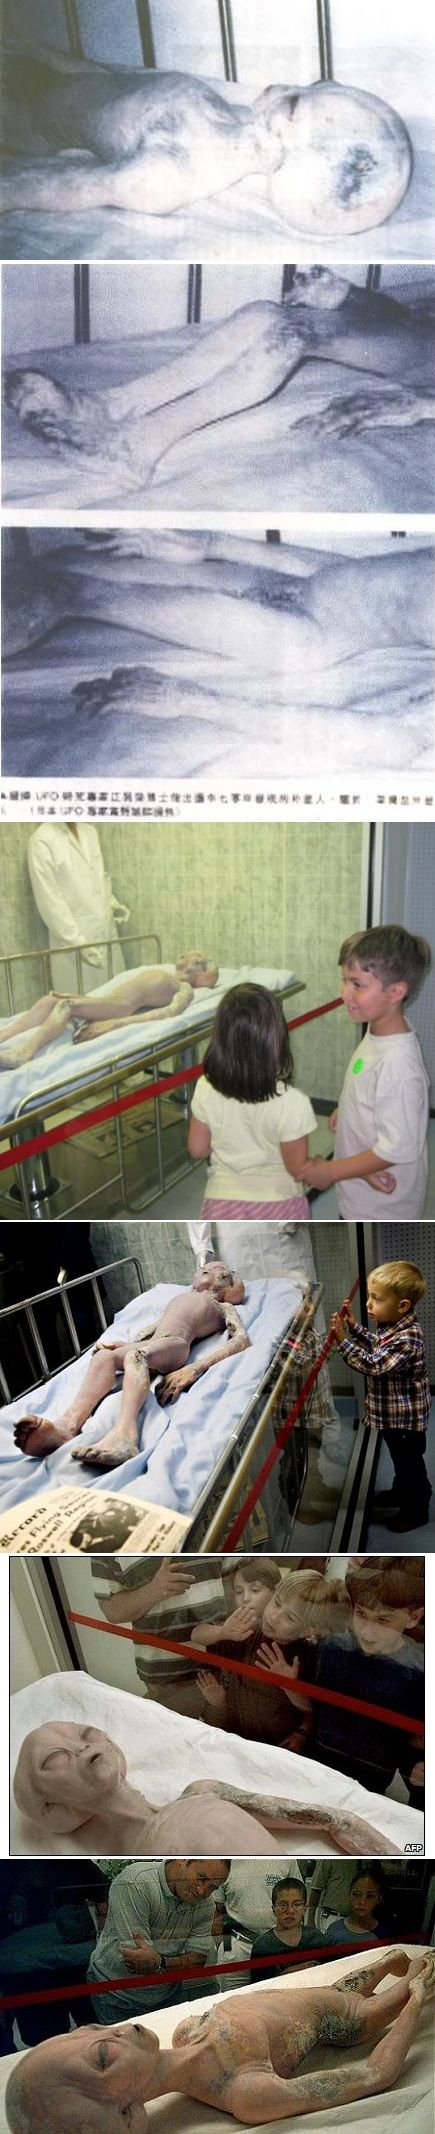 """""""The following alien photos were distributed around the internet after release in 1995 from China. The Chinese translation stated: """"Based upon a source from the Japanese UFO Institute, the picture or photograph shows the 1970 alien incident."""" The photos of the alien were believed to be taken or the alien body found in Gongzui on Dadu River (southwest of Leshan, China)."""" OR it's the prop found in the 'International UFO Museum Research Center in Roswell', New Mexico."""